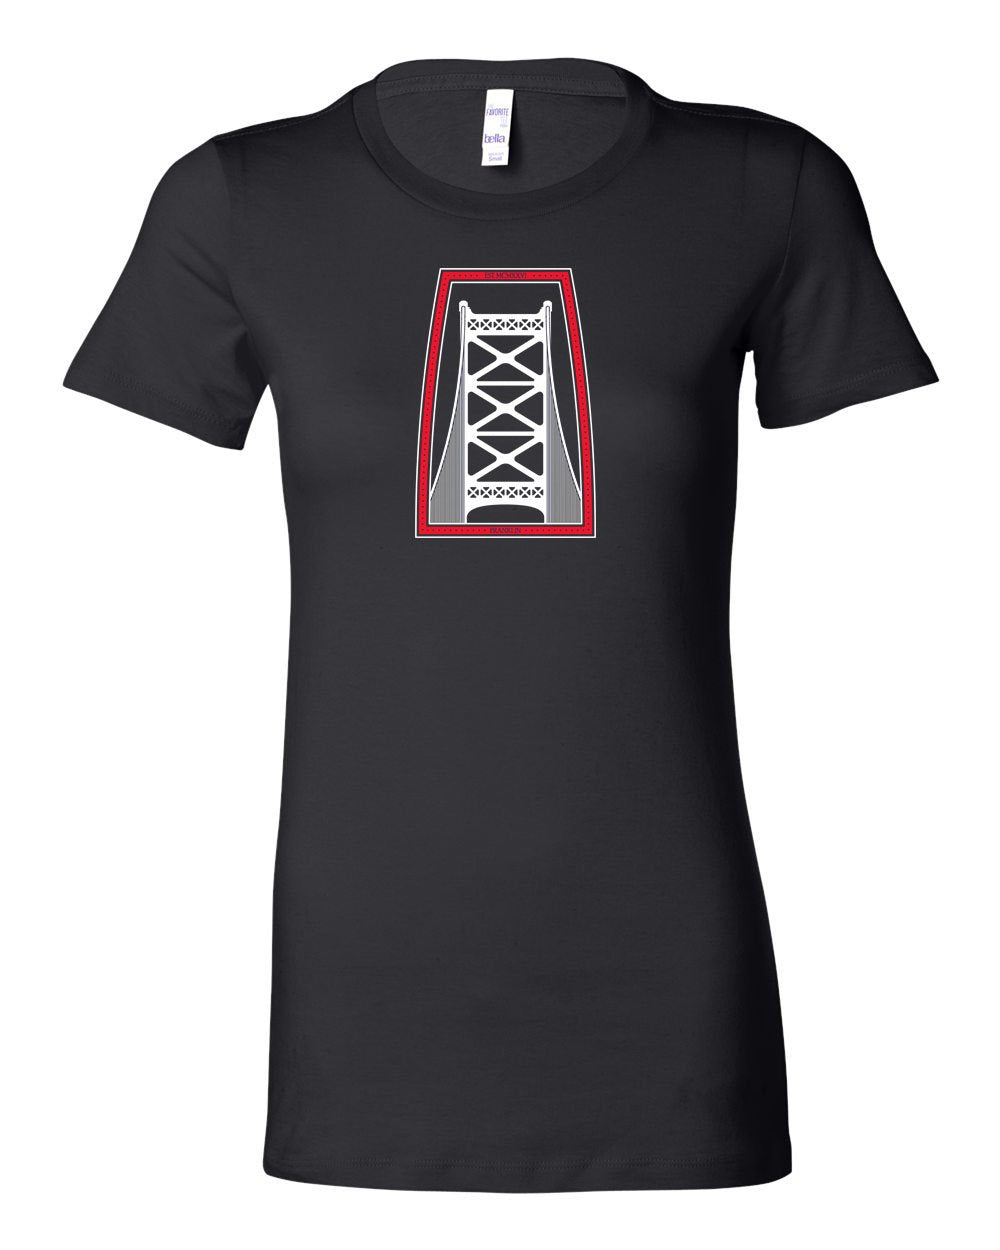 Ben Franklin Bridge Red & White Ink LADIES Junior-Fit T-Shirt